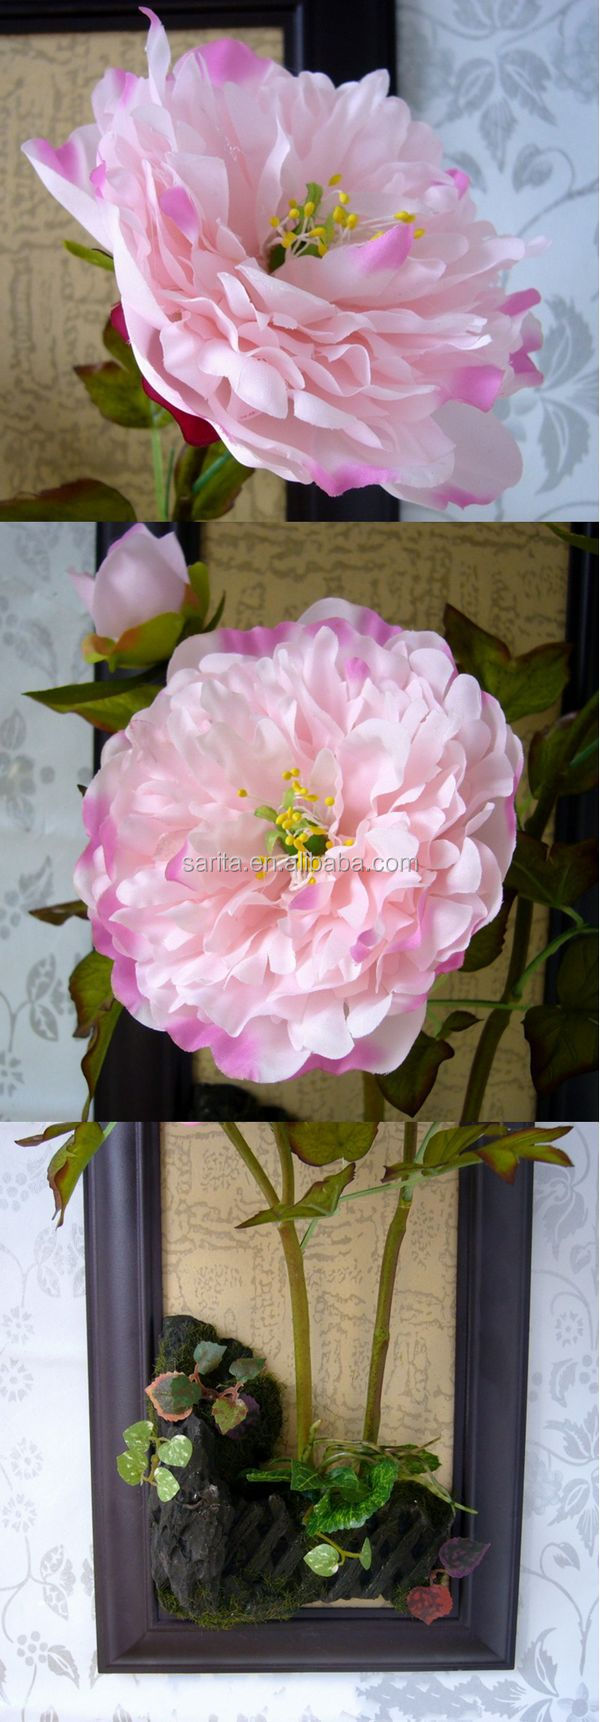 Artificial Flower Arrangement For Sale Wall Hanging Flower